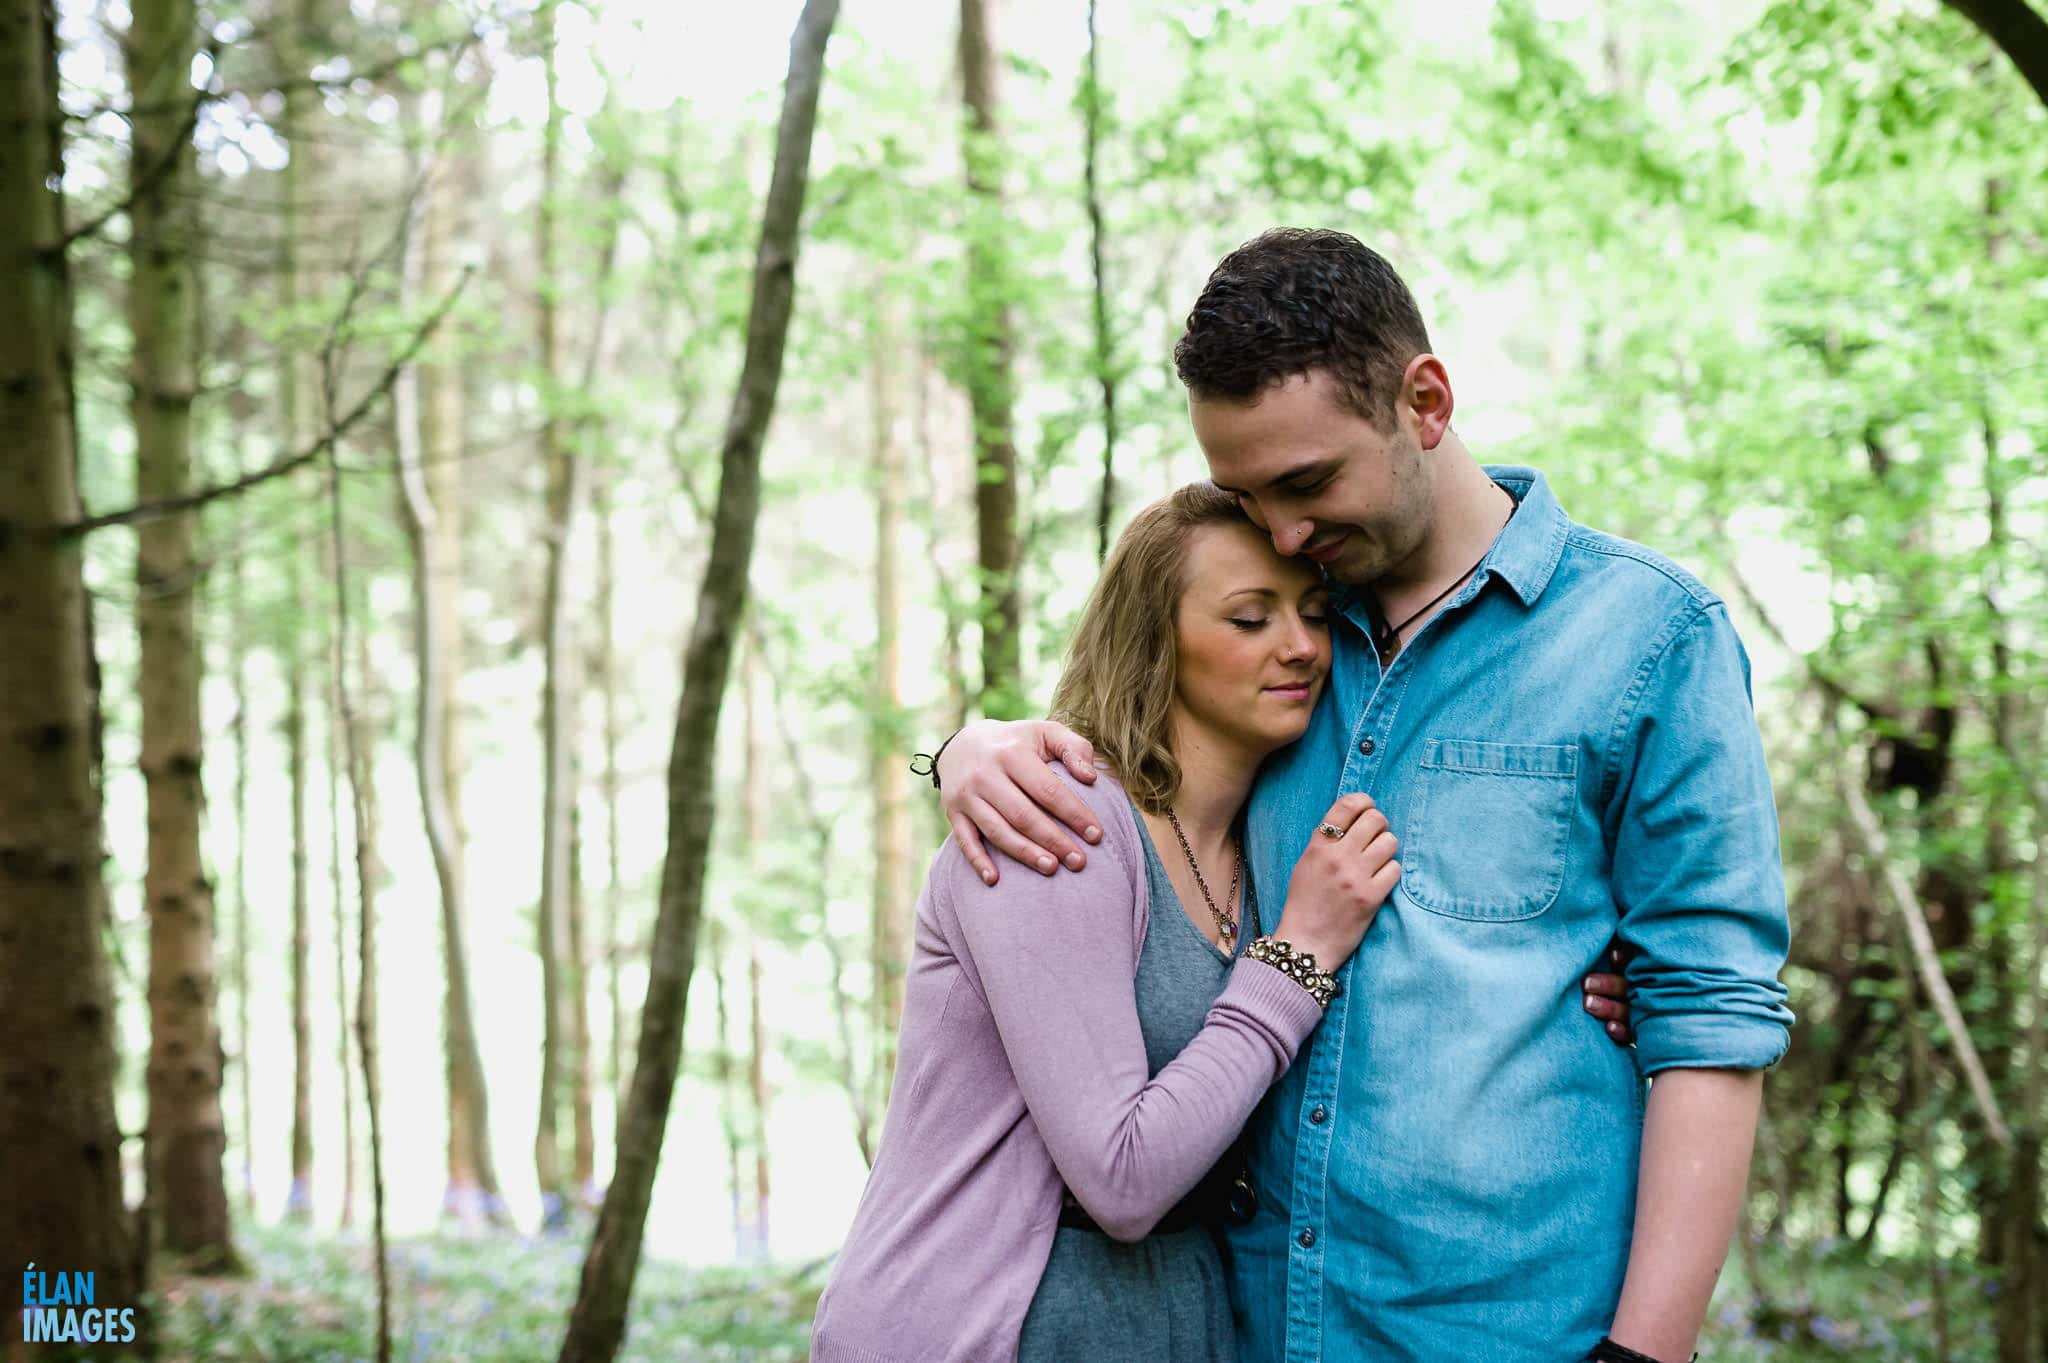 Engagement Photo Shoot in the Bluebell Woods near Bristol 33